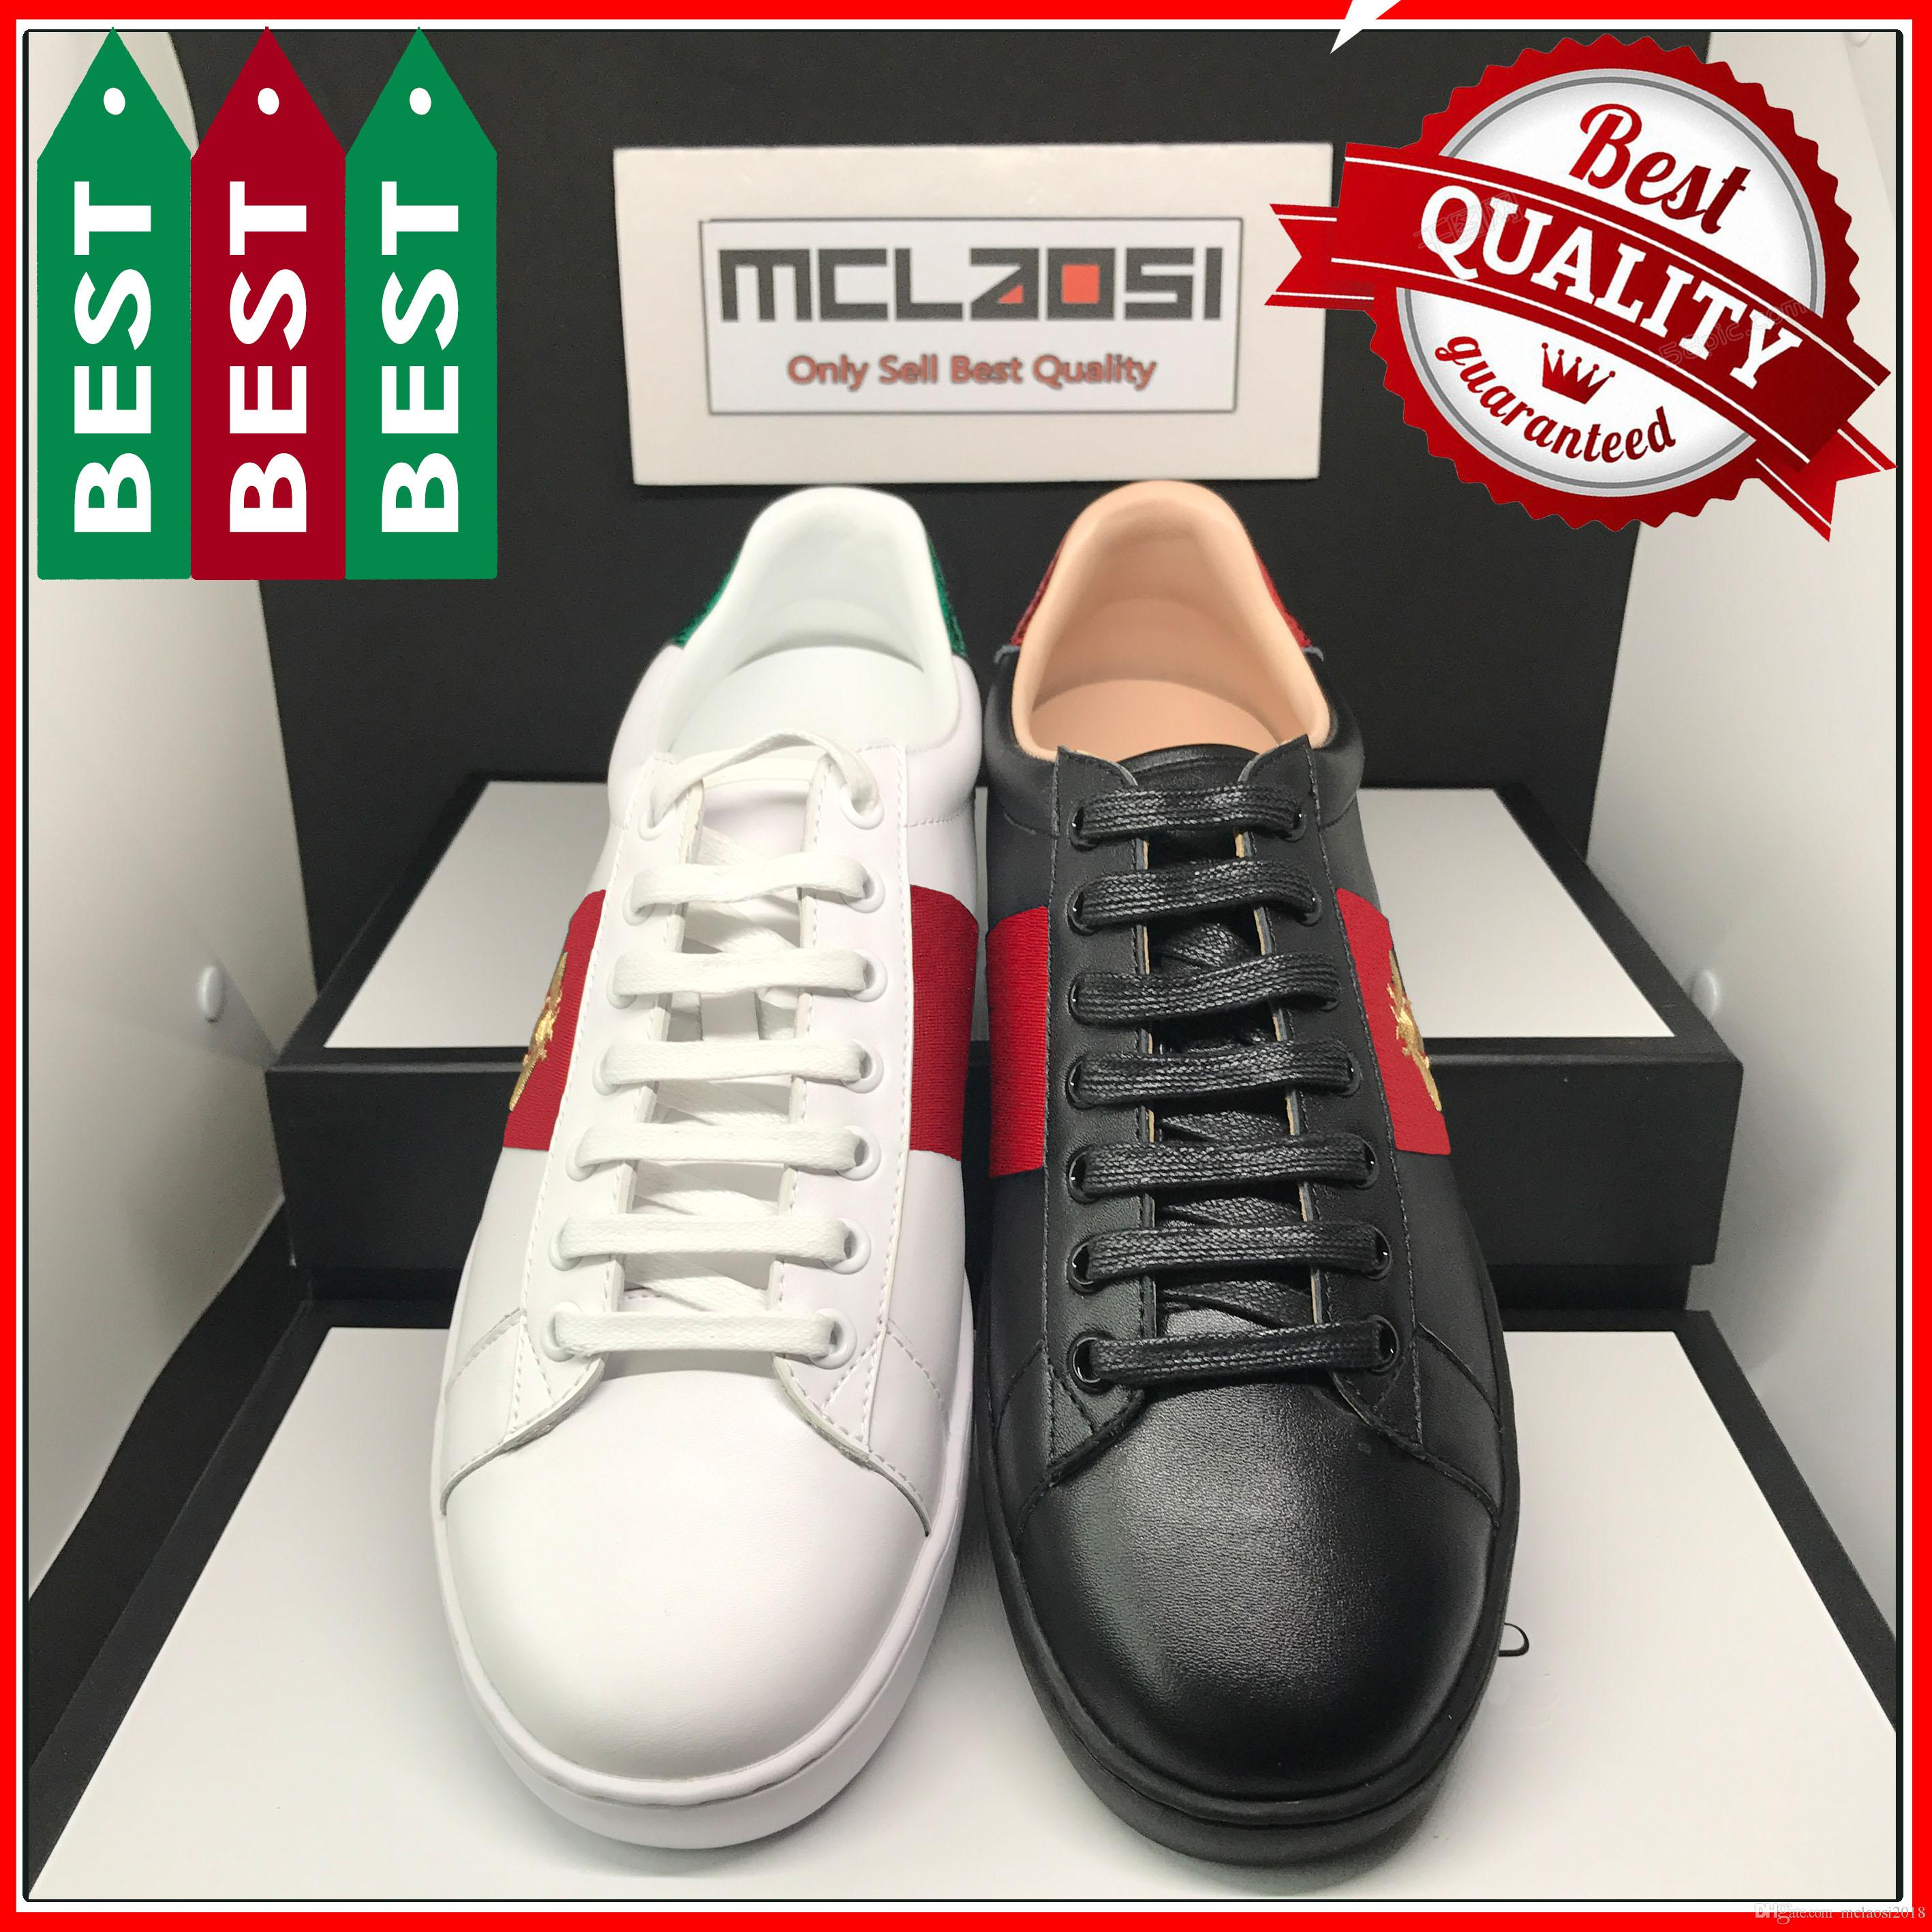 5d403862d12 MCLAOSI SELL BEST 2018 New Men Designer Sneakers Luxury Shoes And ...